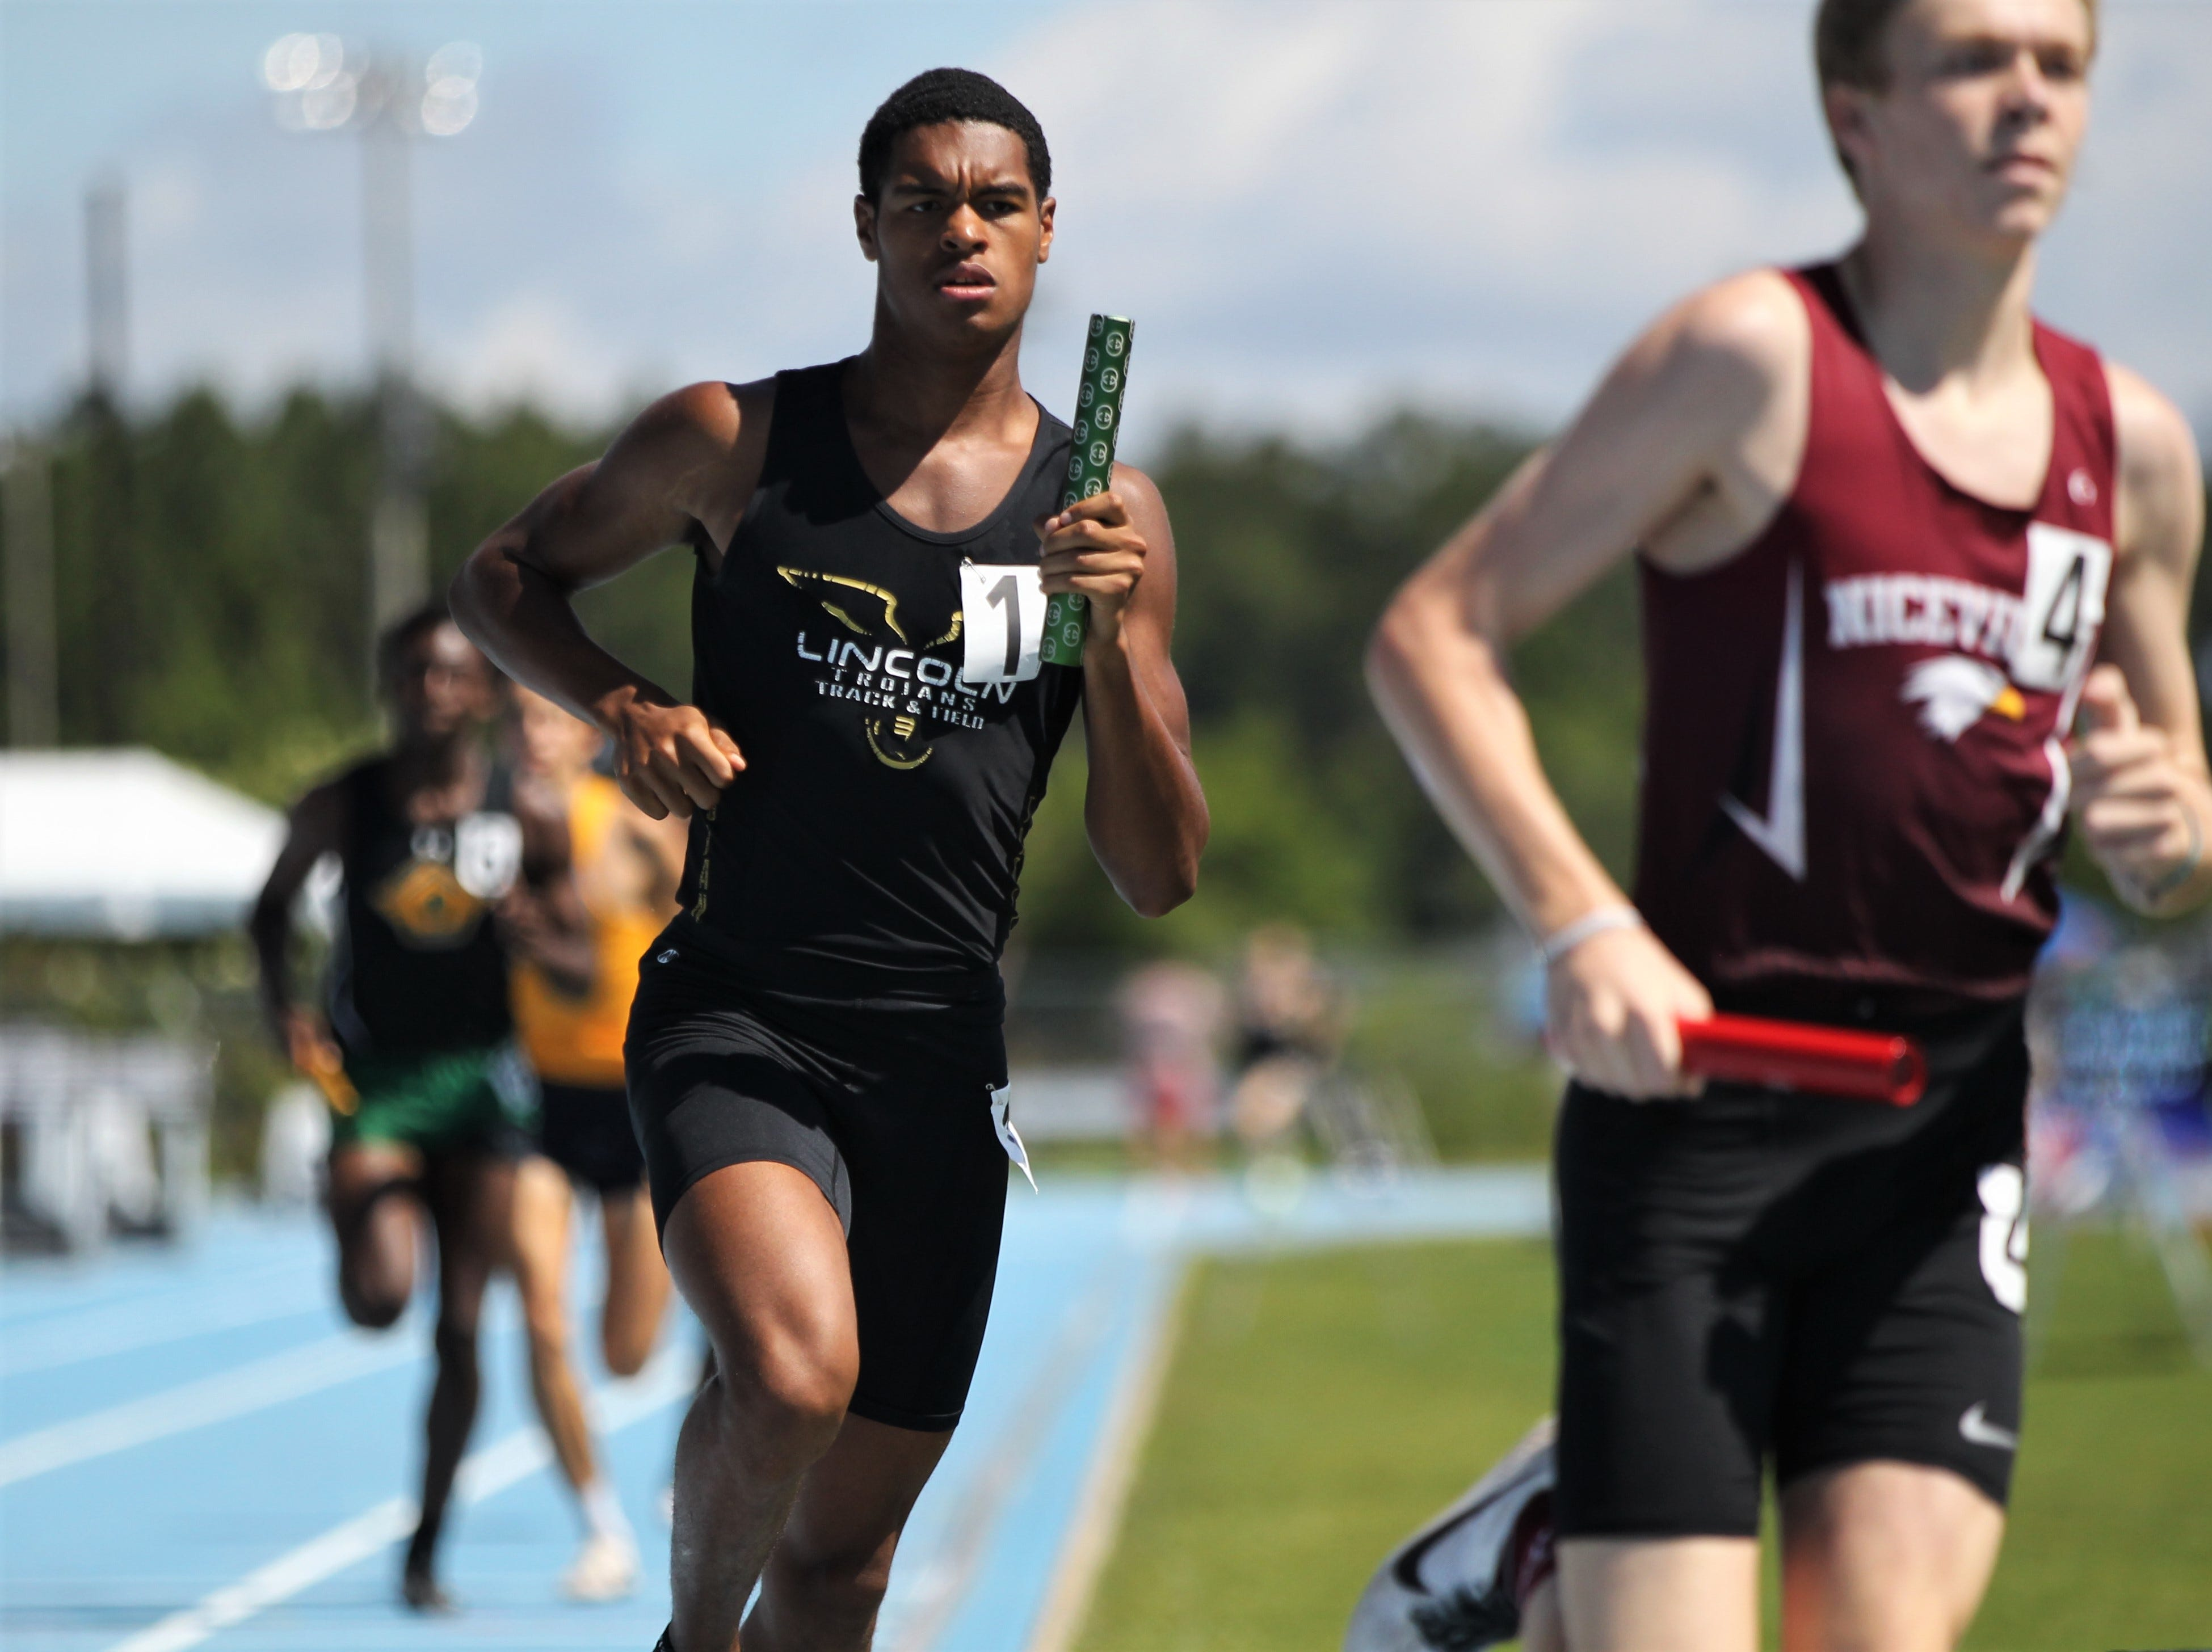 Lincoln senior Charles Hruda runs a 4x800 leg during the FHSAA Track and Field State Championships at UNF's Hodges Stadium in Jacksonville on May 4, 2019.